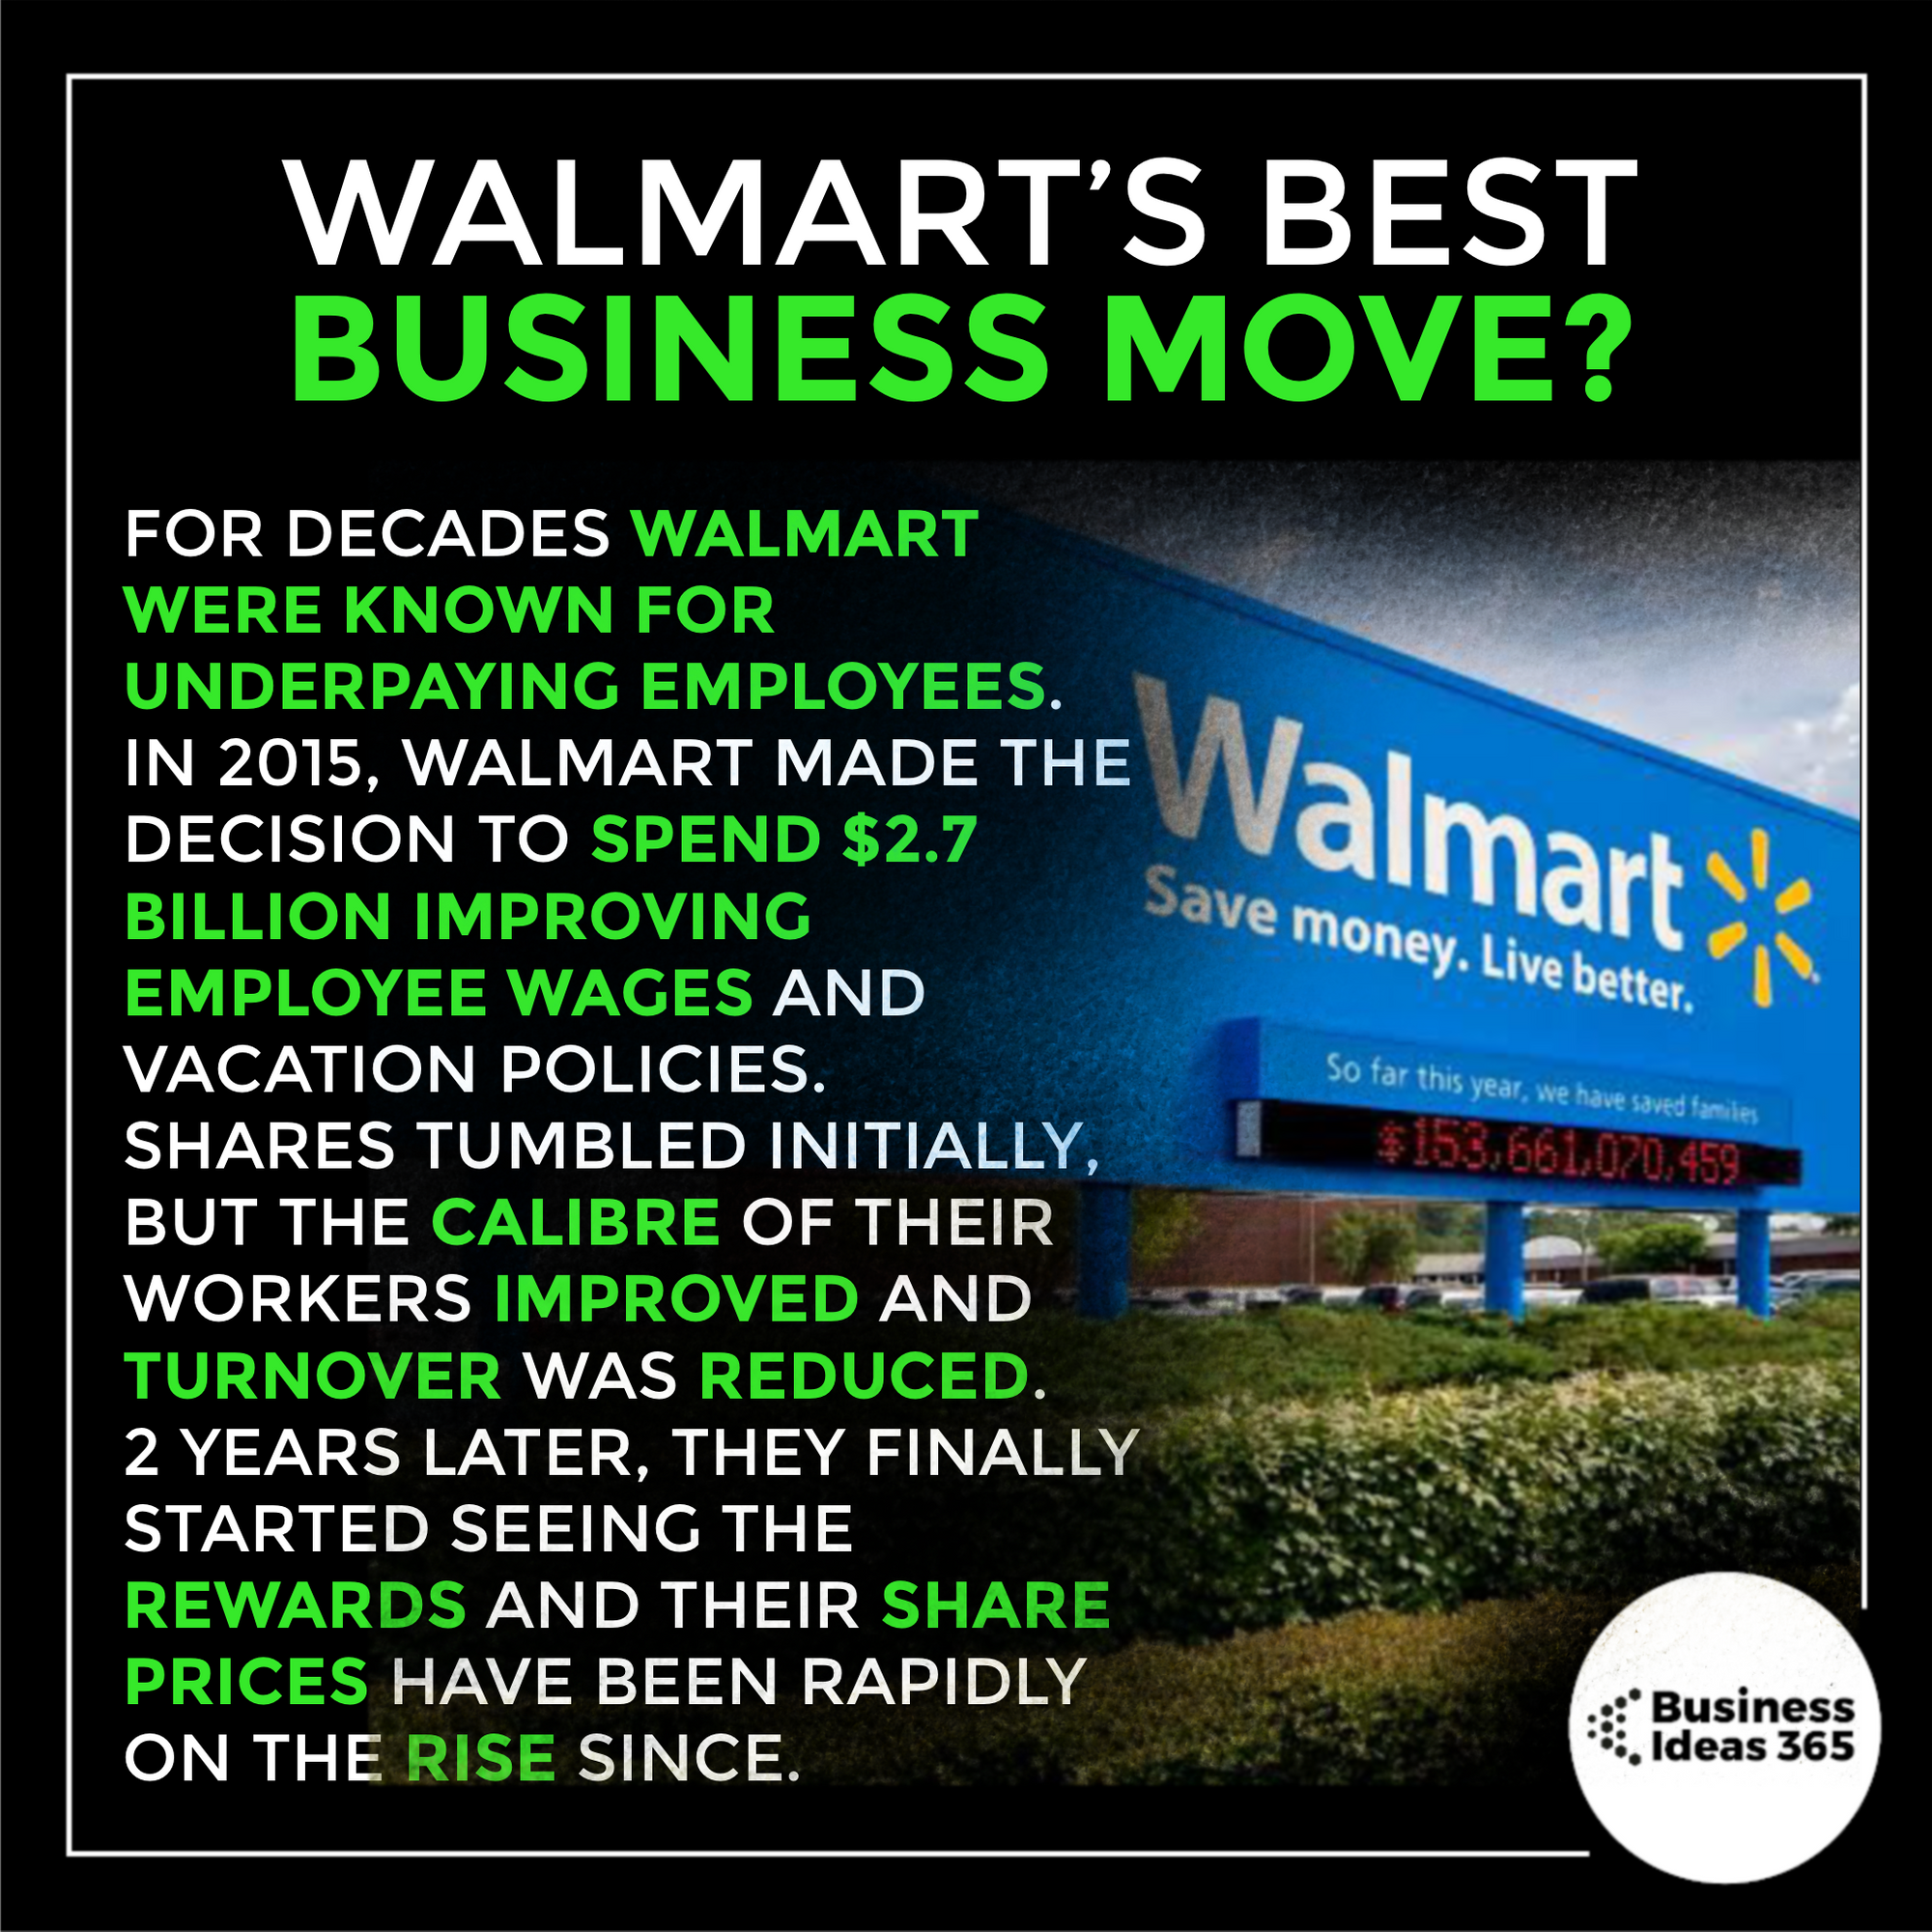 What Do You Think Of This Business Move By Walmart